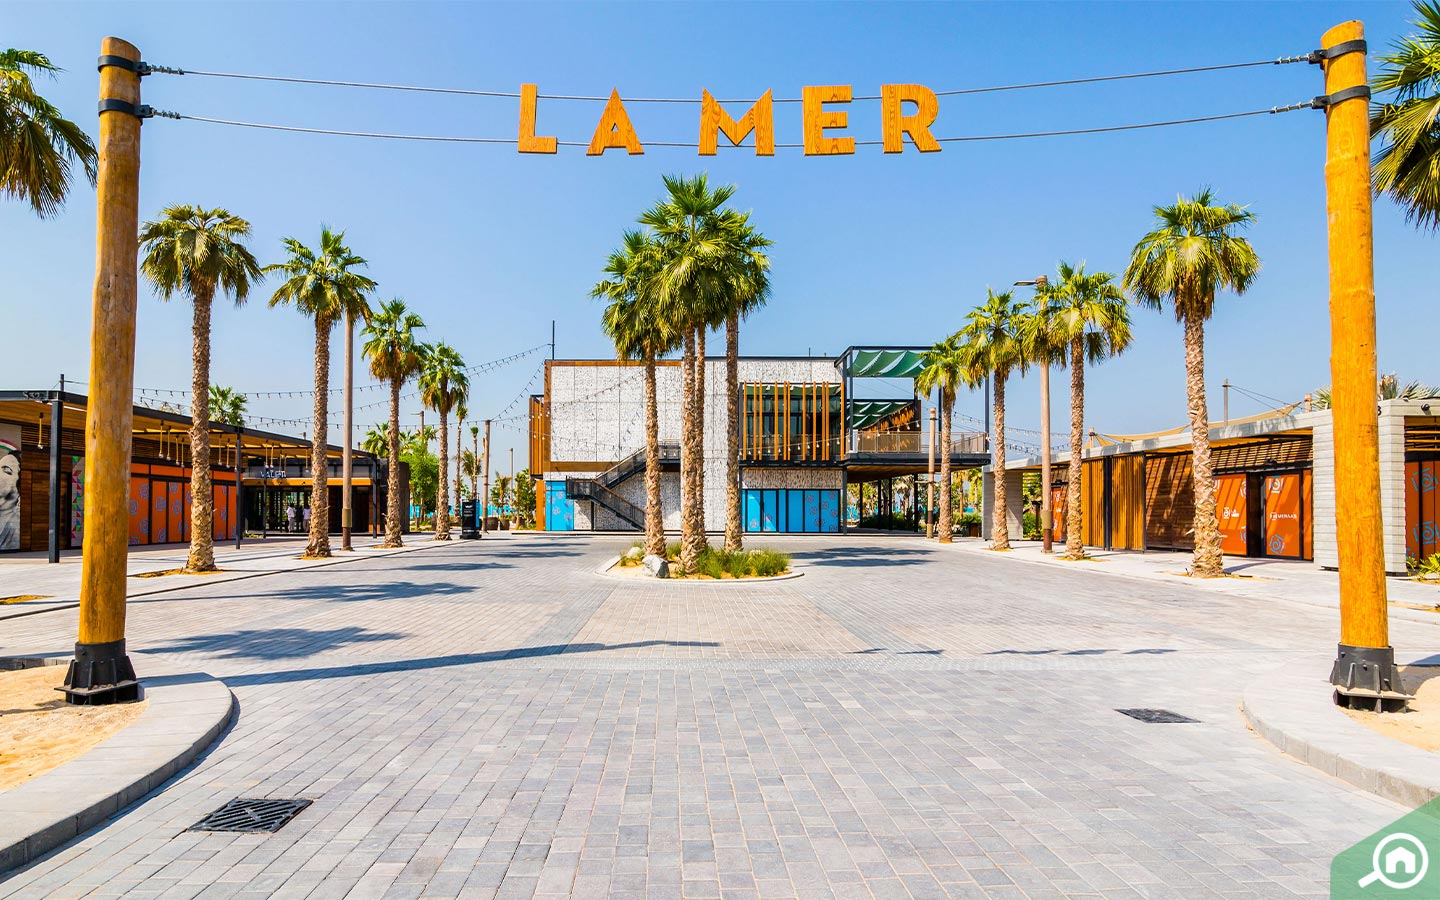 The entrance to La Mer Dubai at Jumeirah 1 with an orange La Mer sign